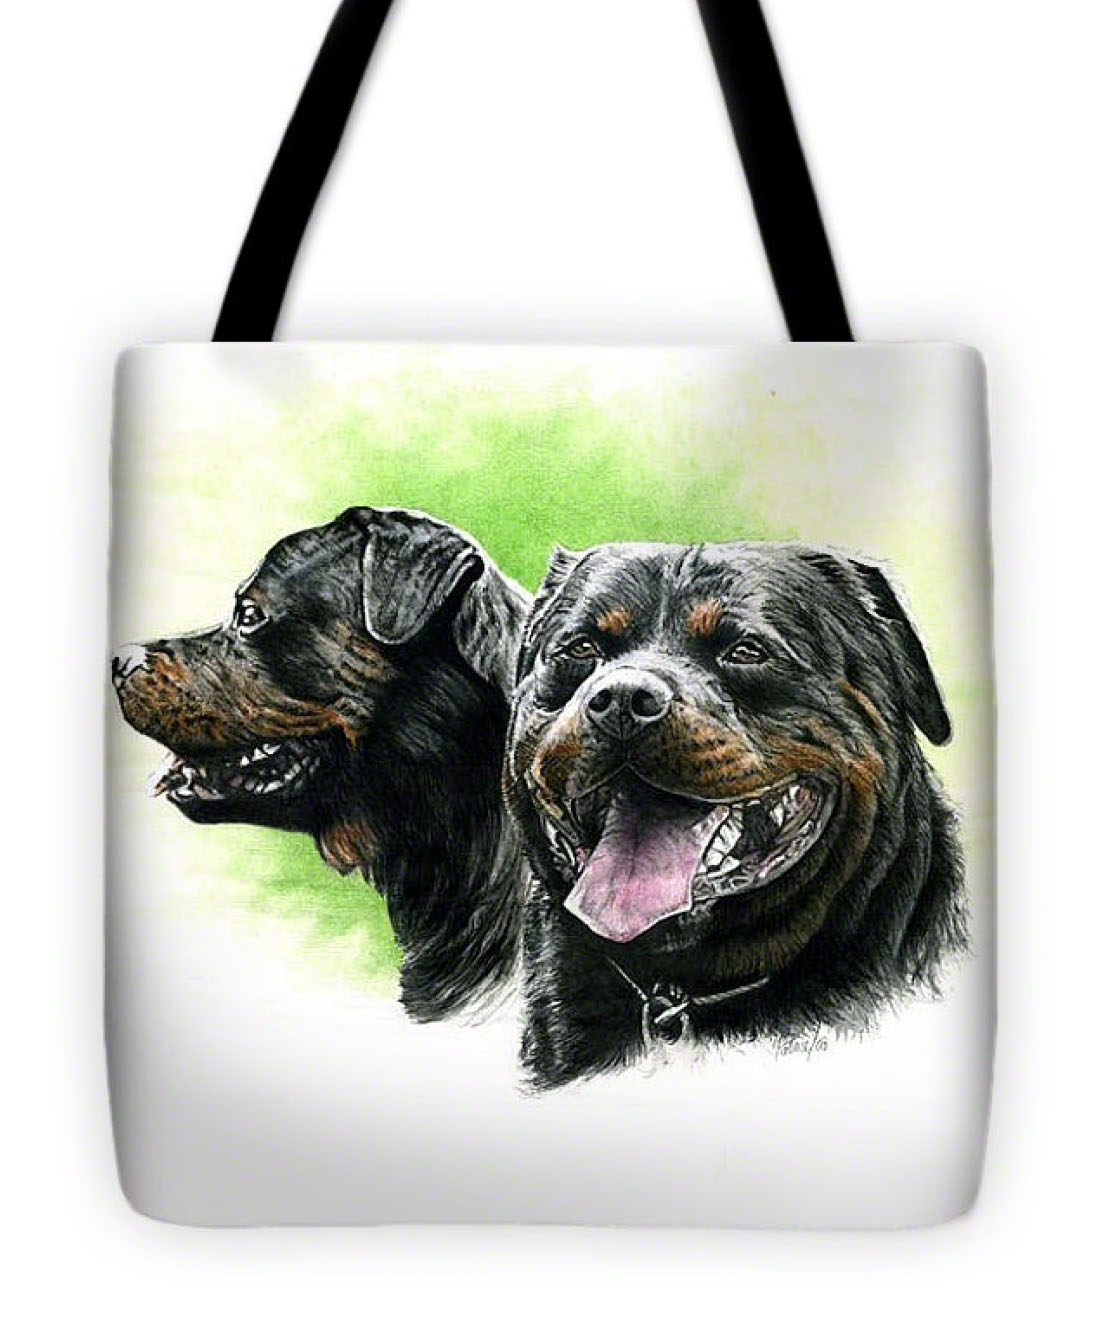 Rottie Tote-Bag - Product by Patrice